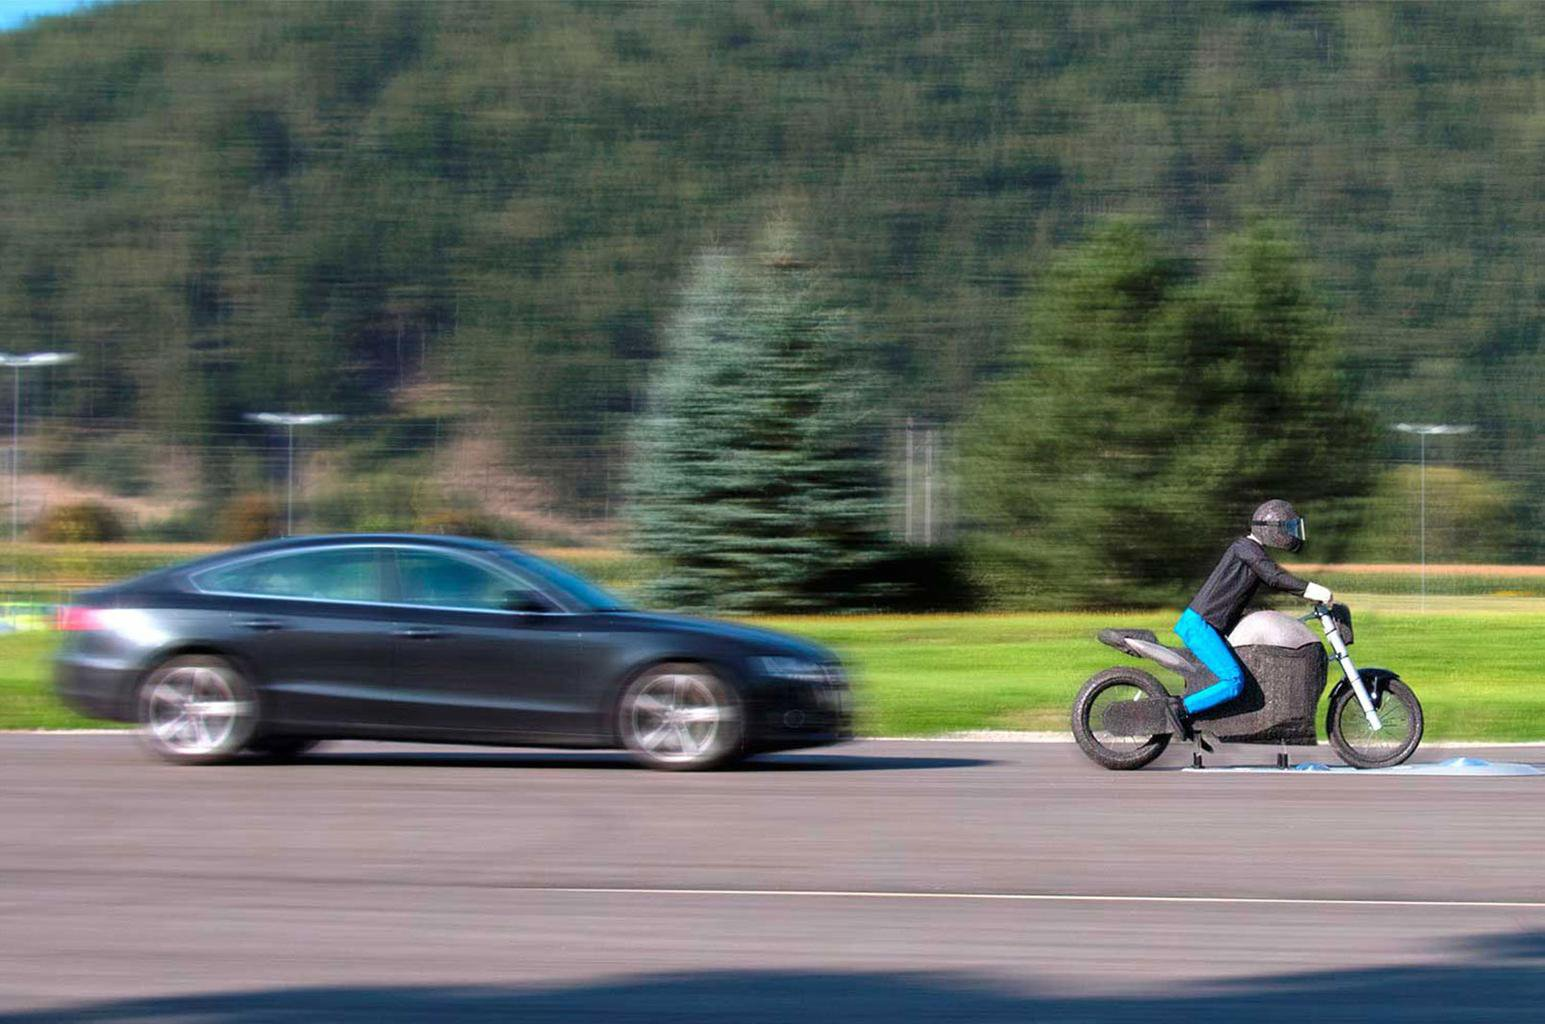 Road accidents fall 10% in five years thanks to new safety aids